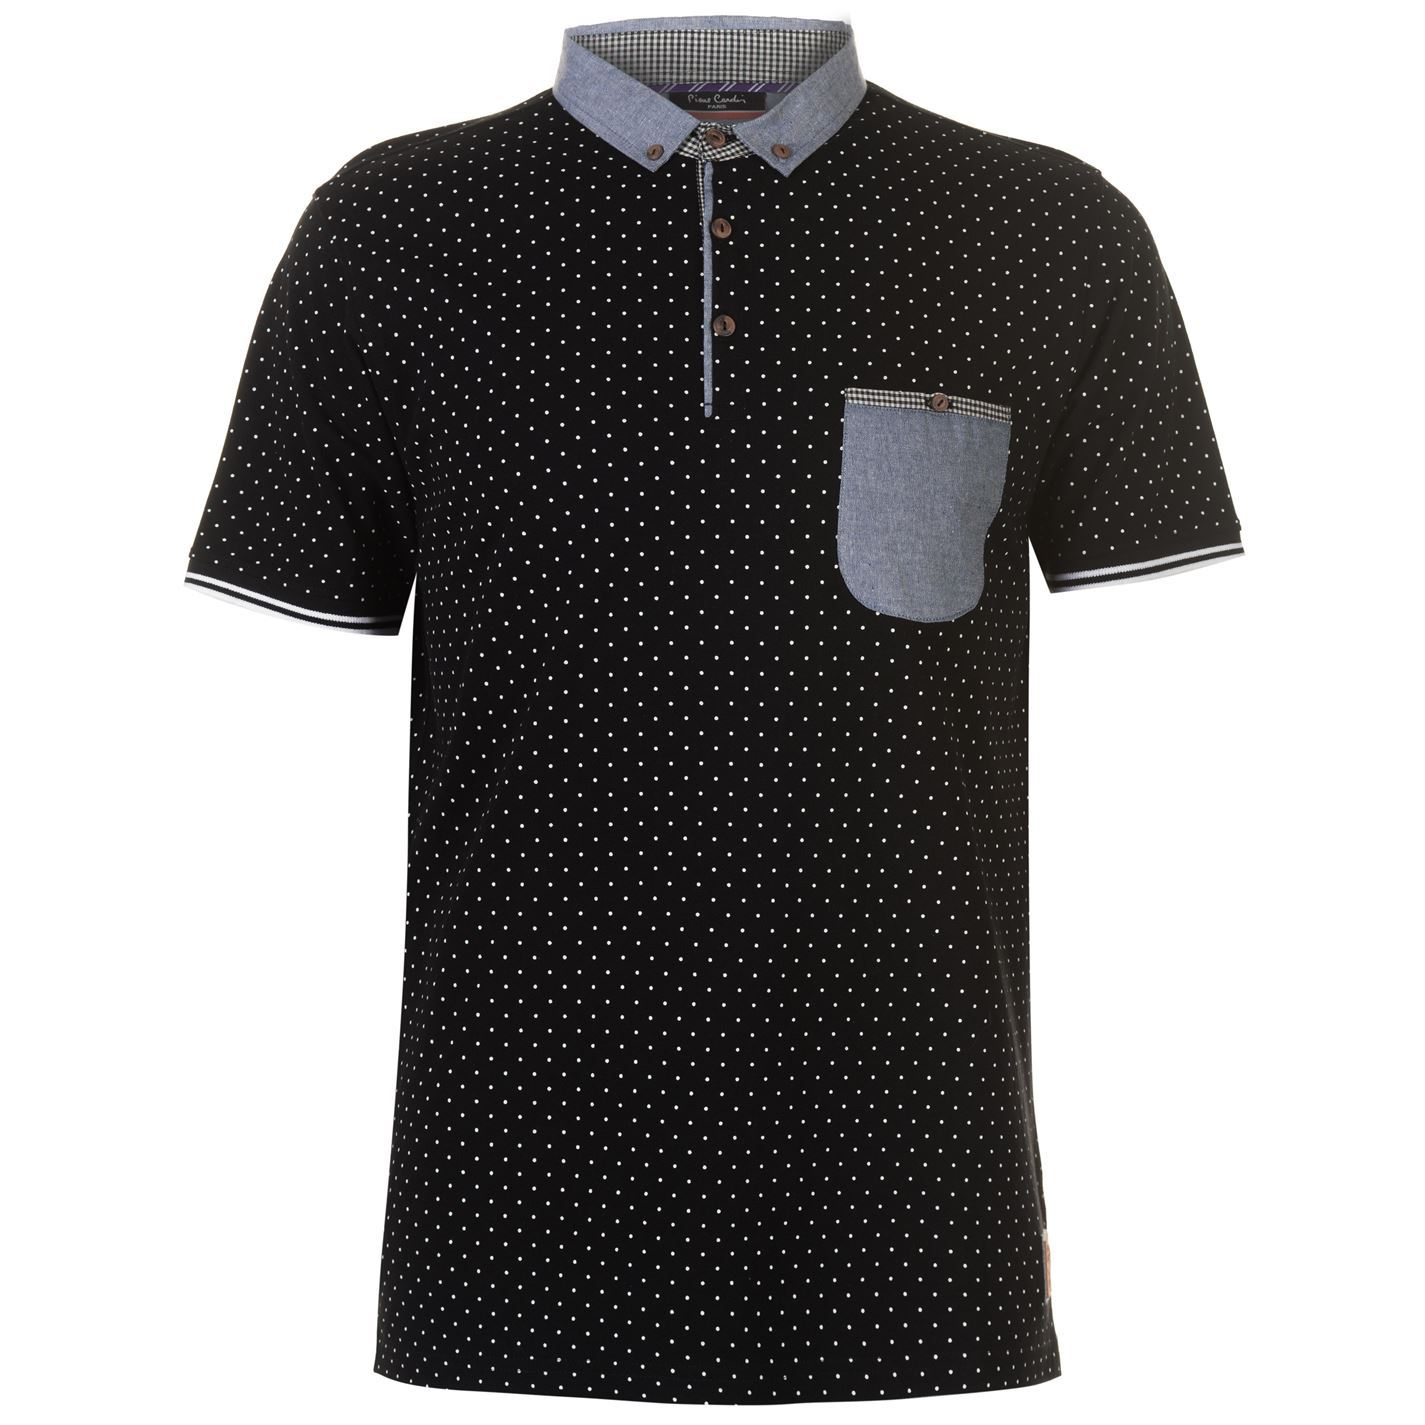 Pierre-Cardin-AOP-Contrast-Pocket-Polo-Shirt-Mens-Top-Tee-Casual-T-Shirt